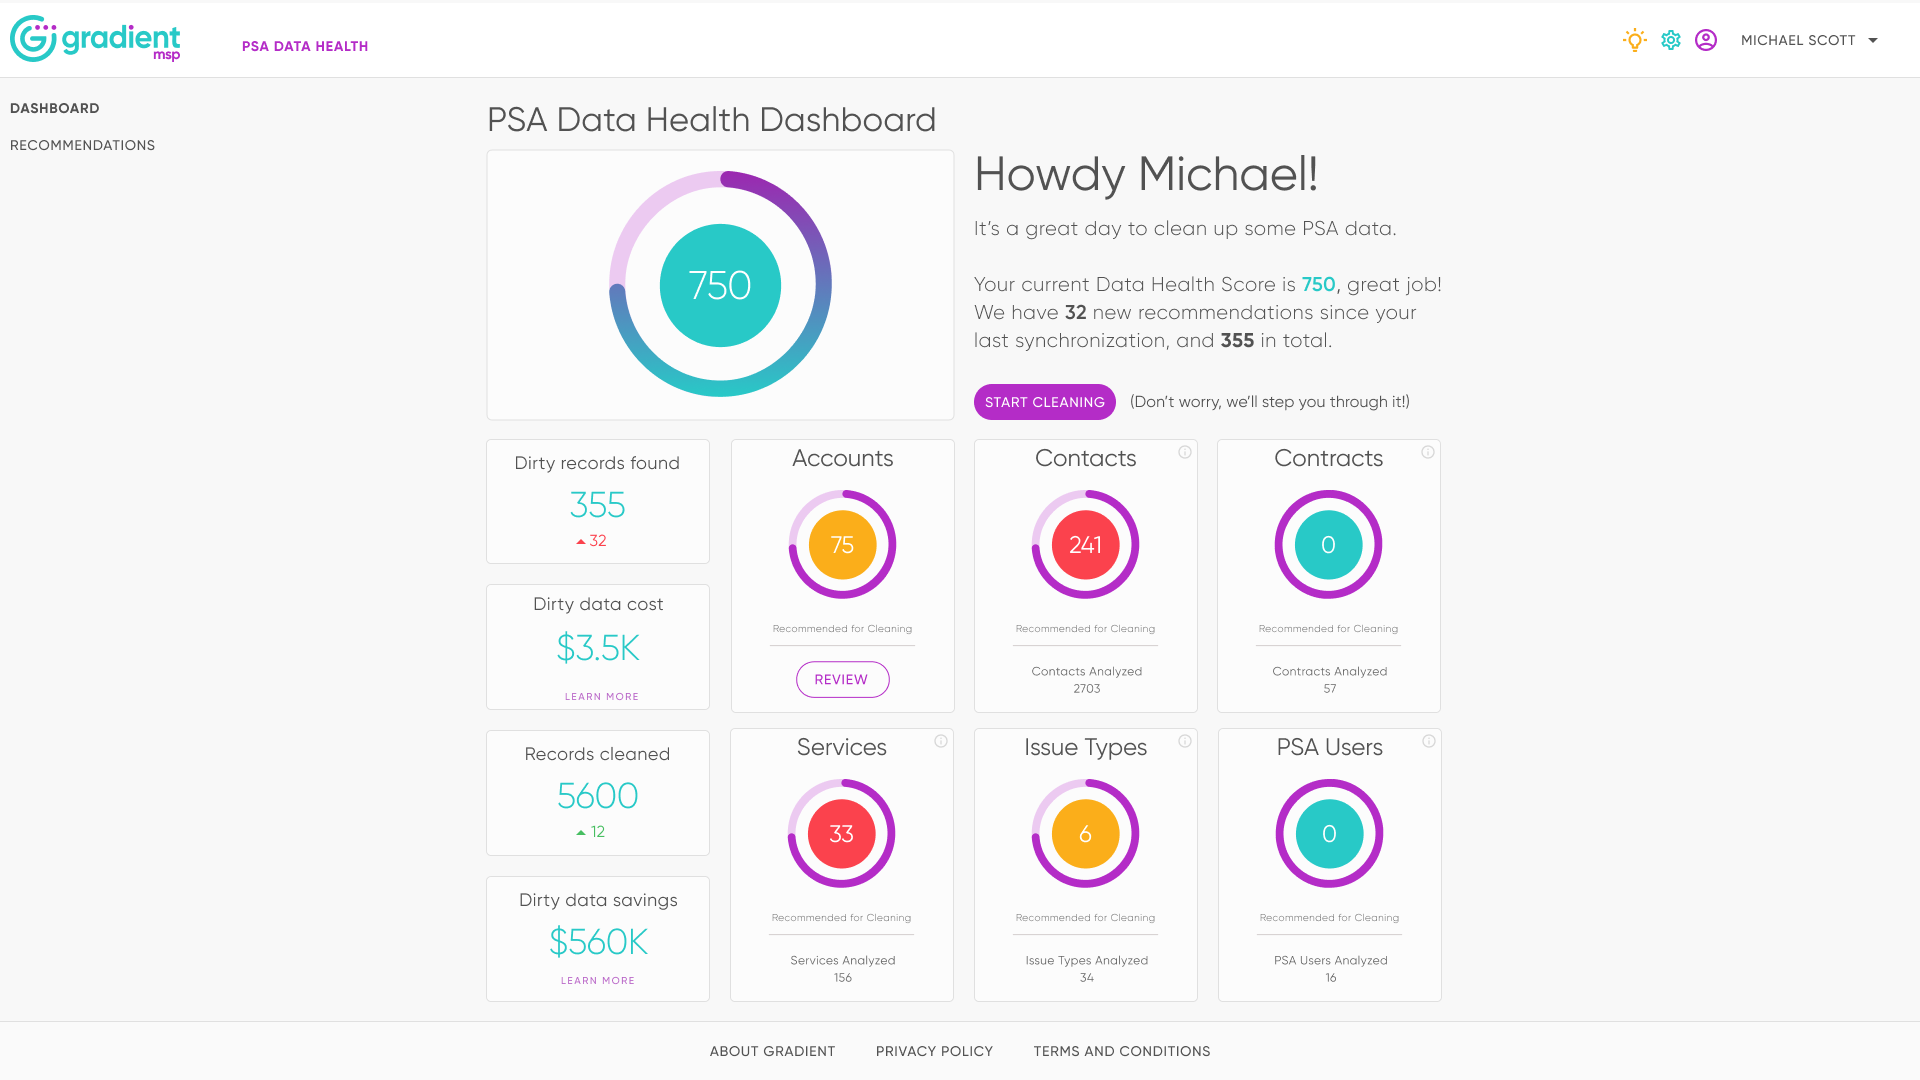 Dirty Data Dashboard - PNG